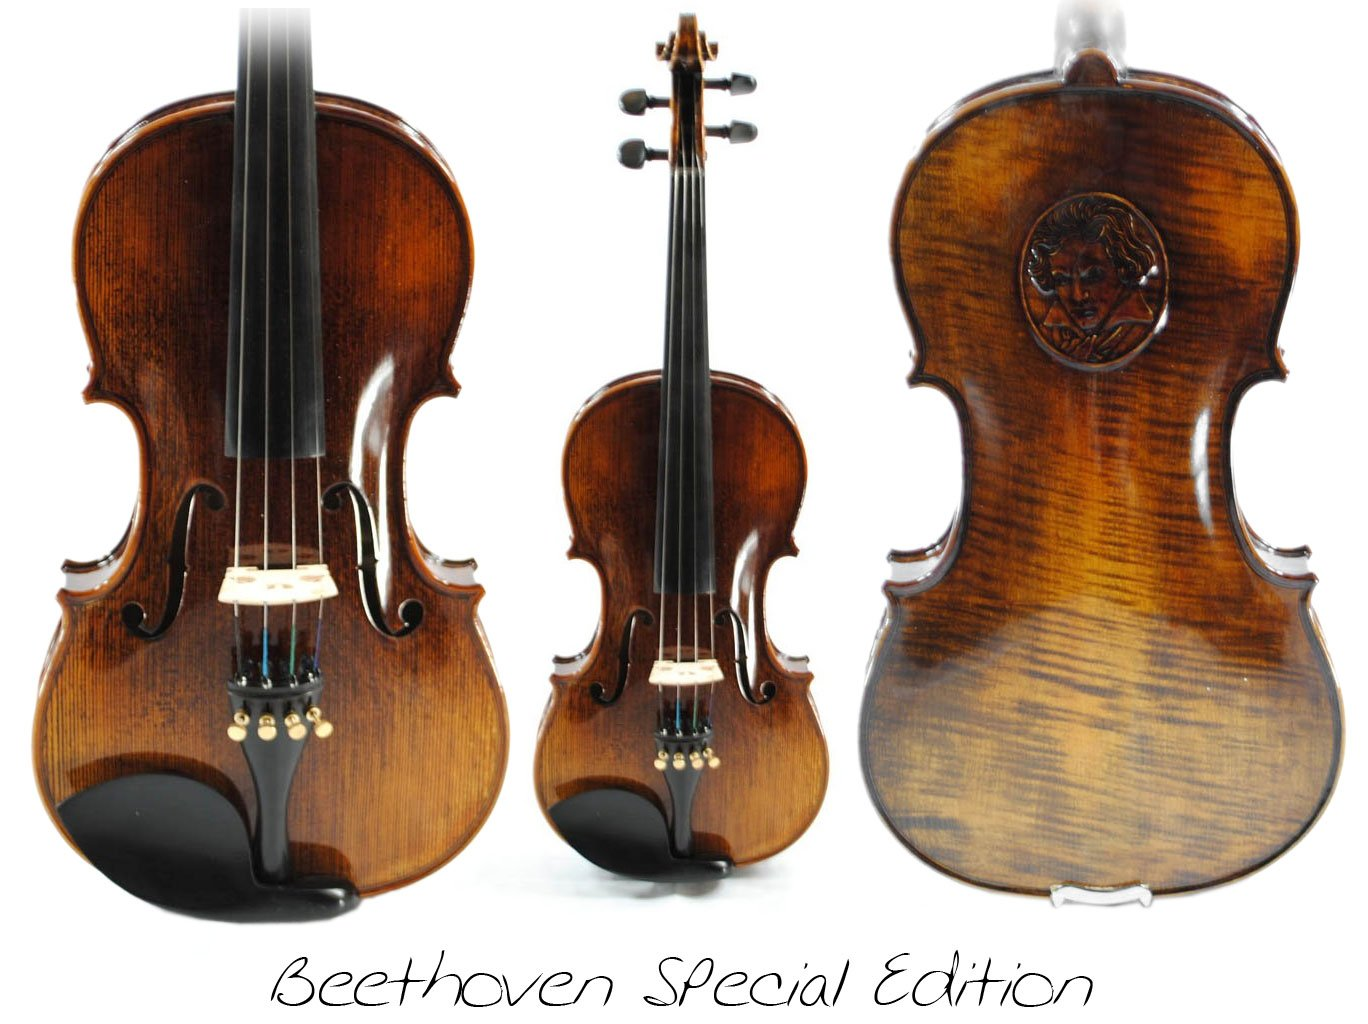 Vienna Strings Beethoven Special Edition Violin